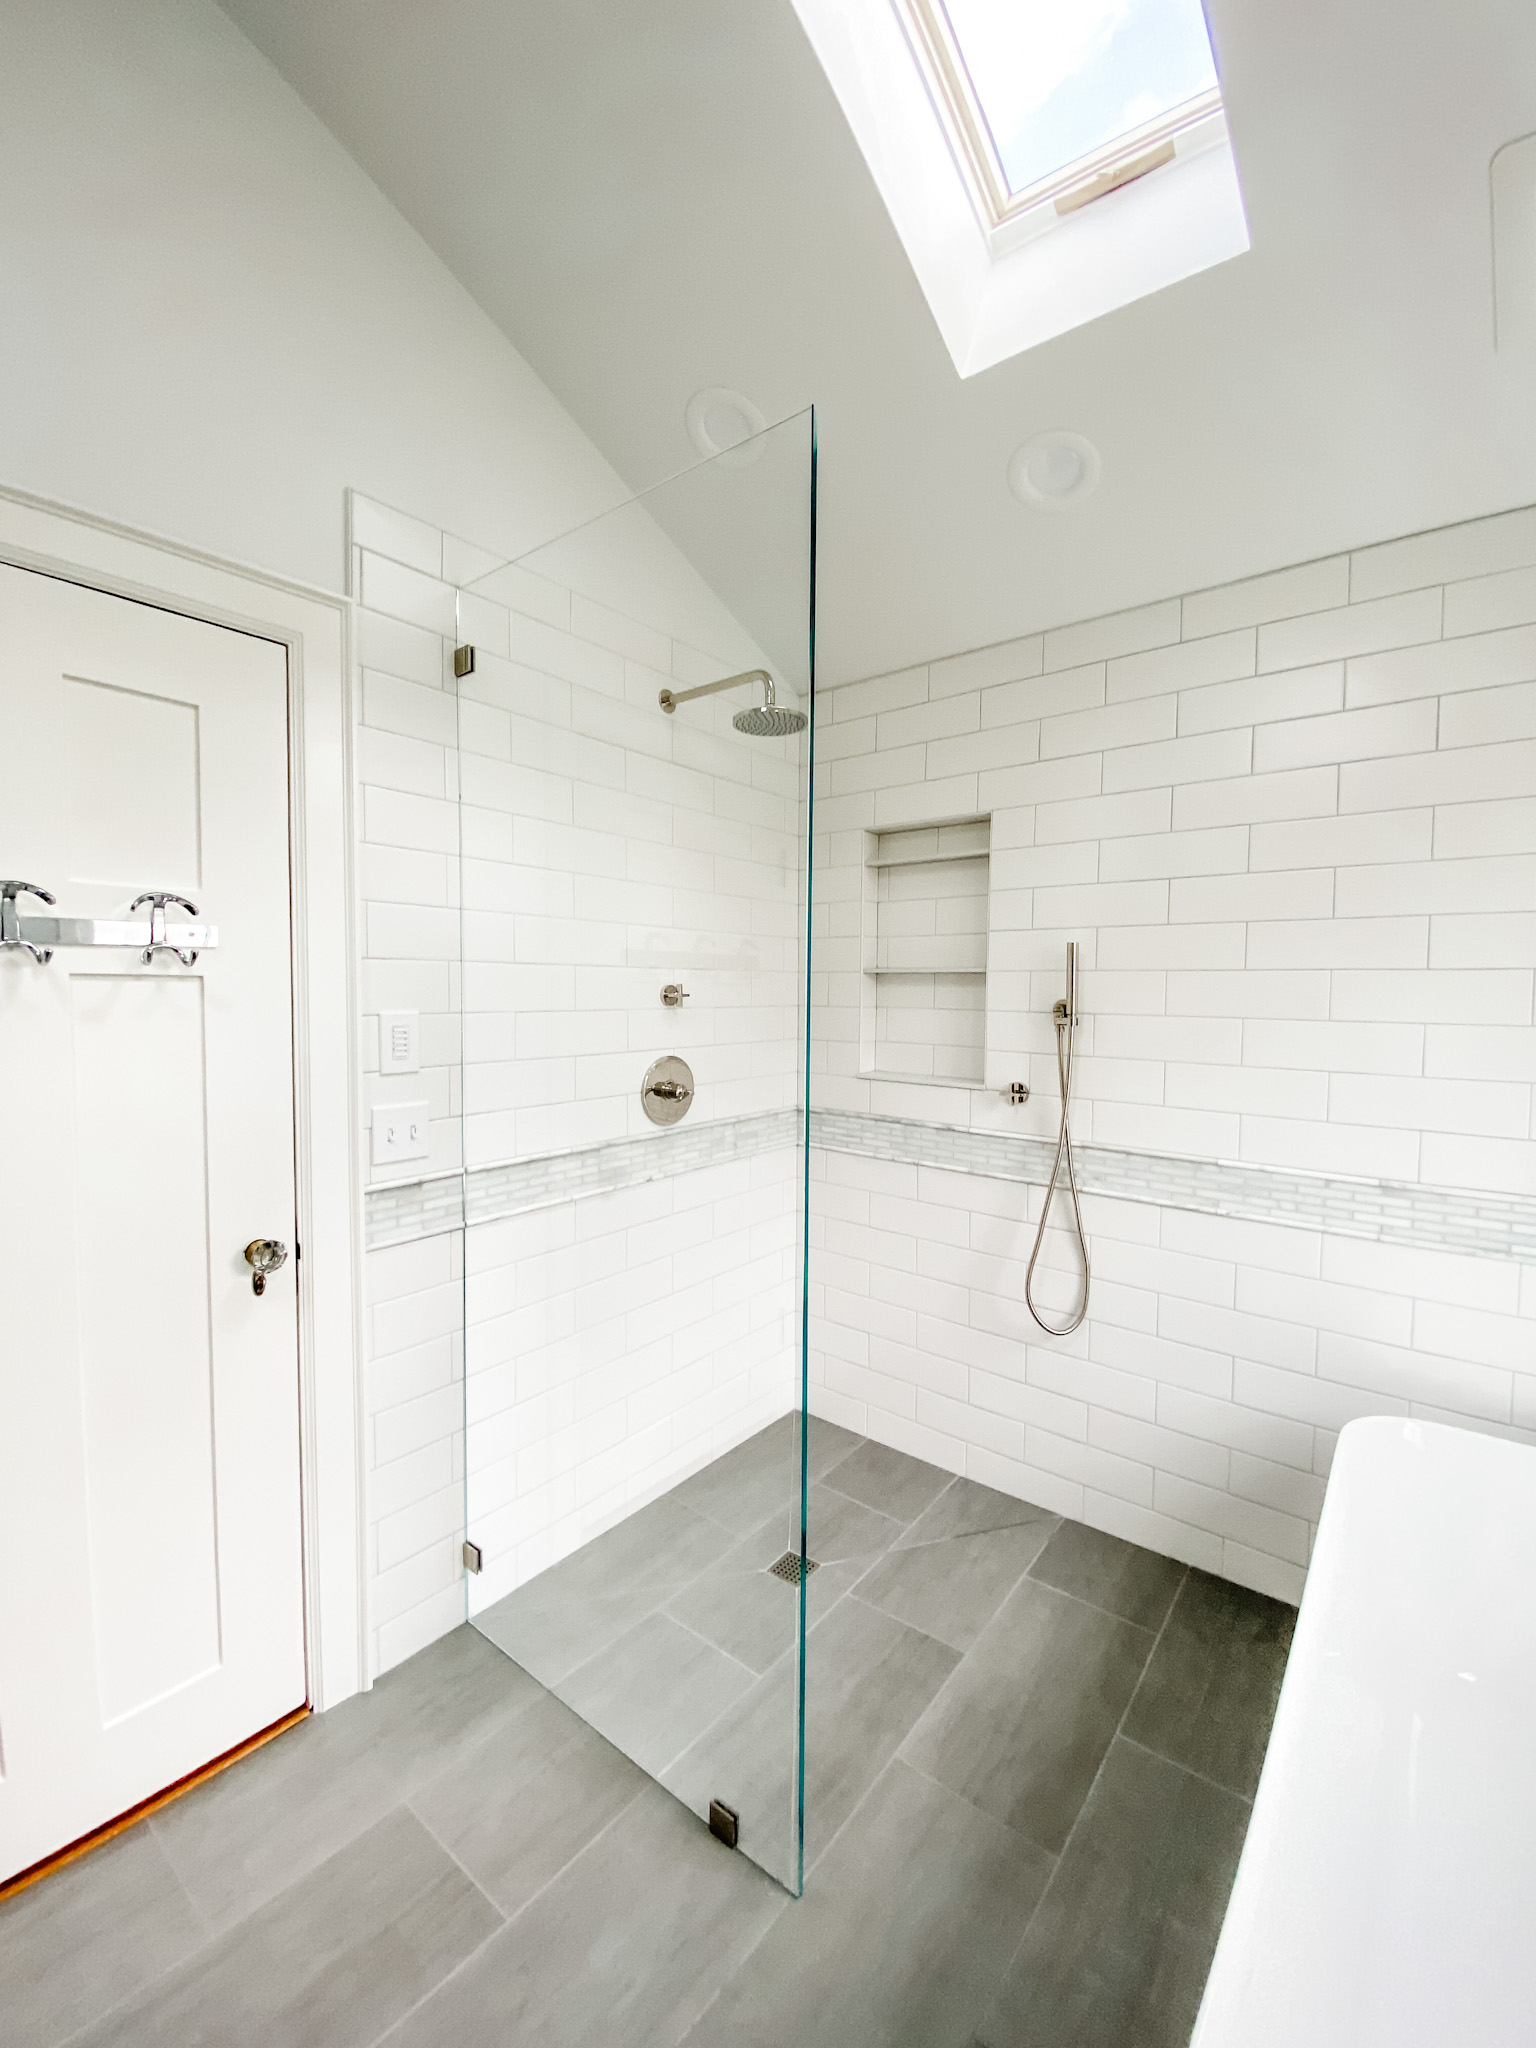 Glass Shower Wall Bathtub Bathroom Design